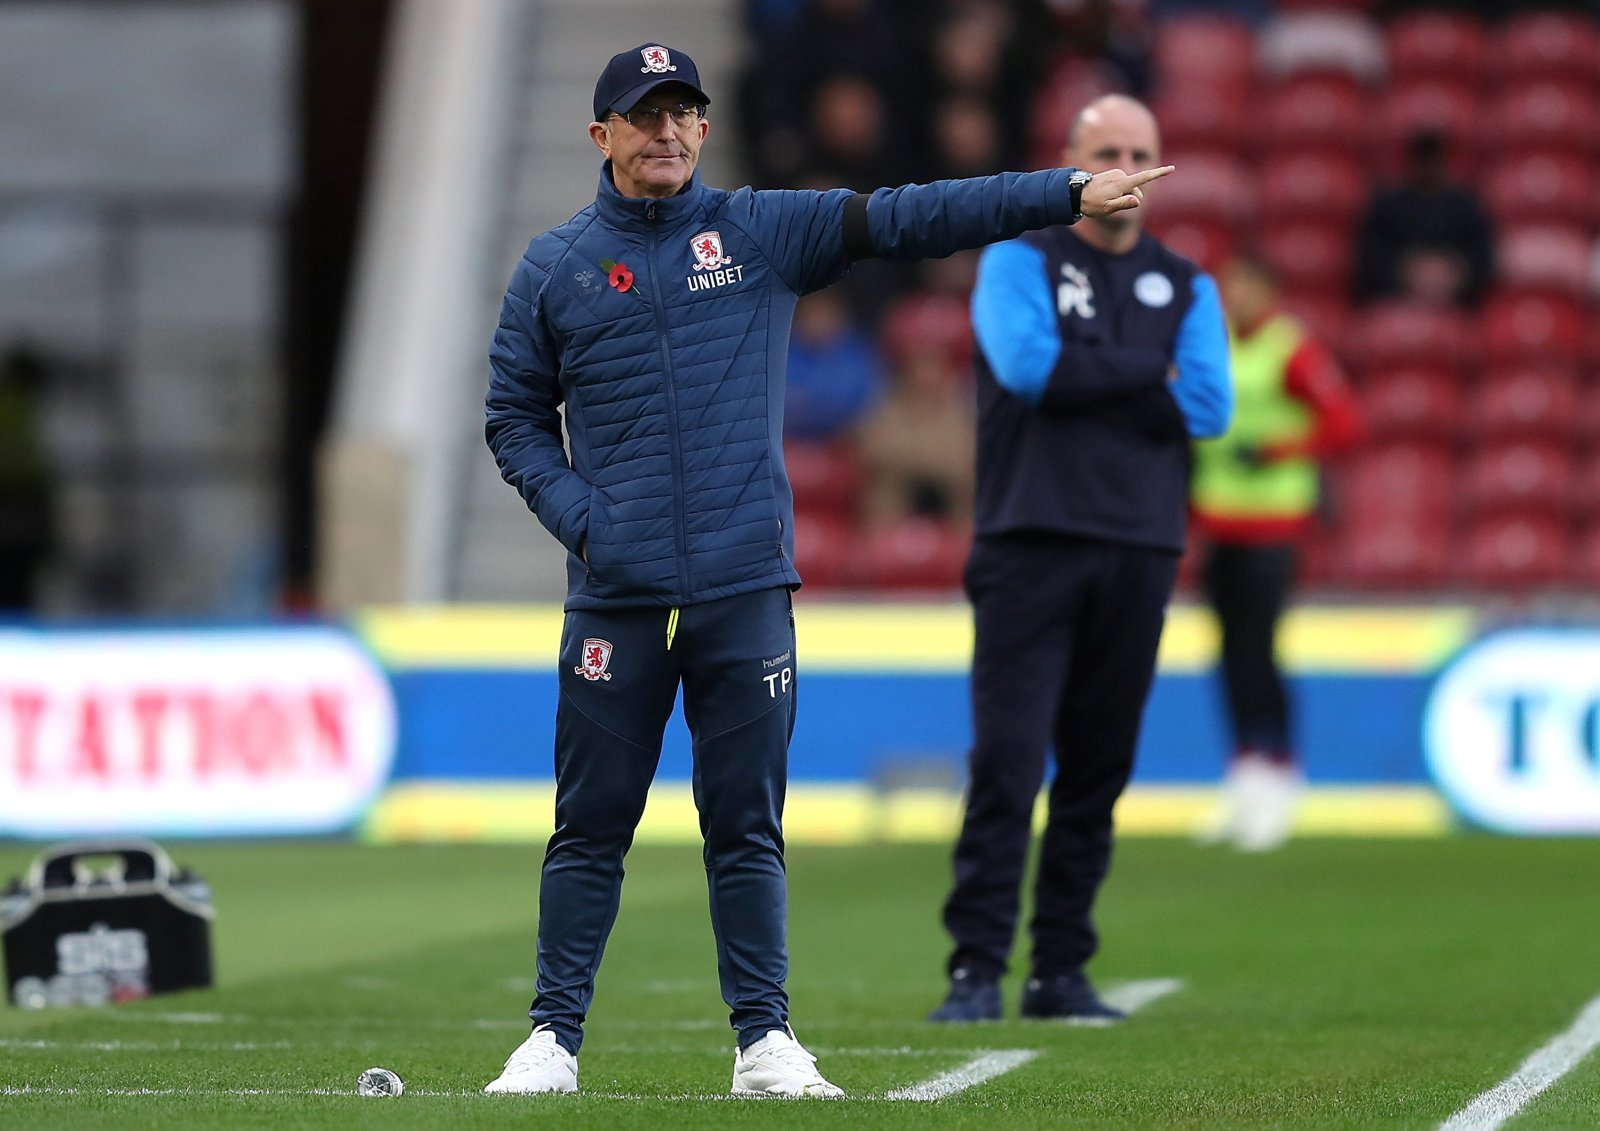 Pulis' warning to league leaders won't intimidate anyone